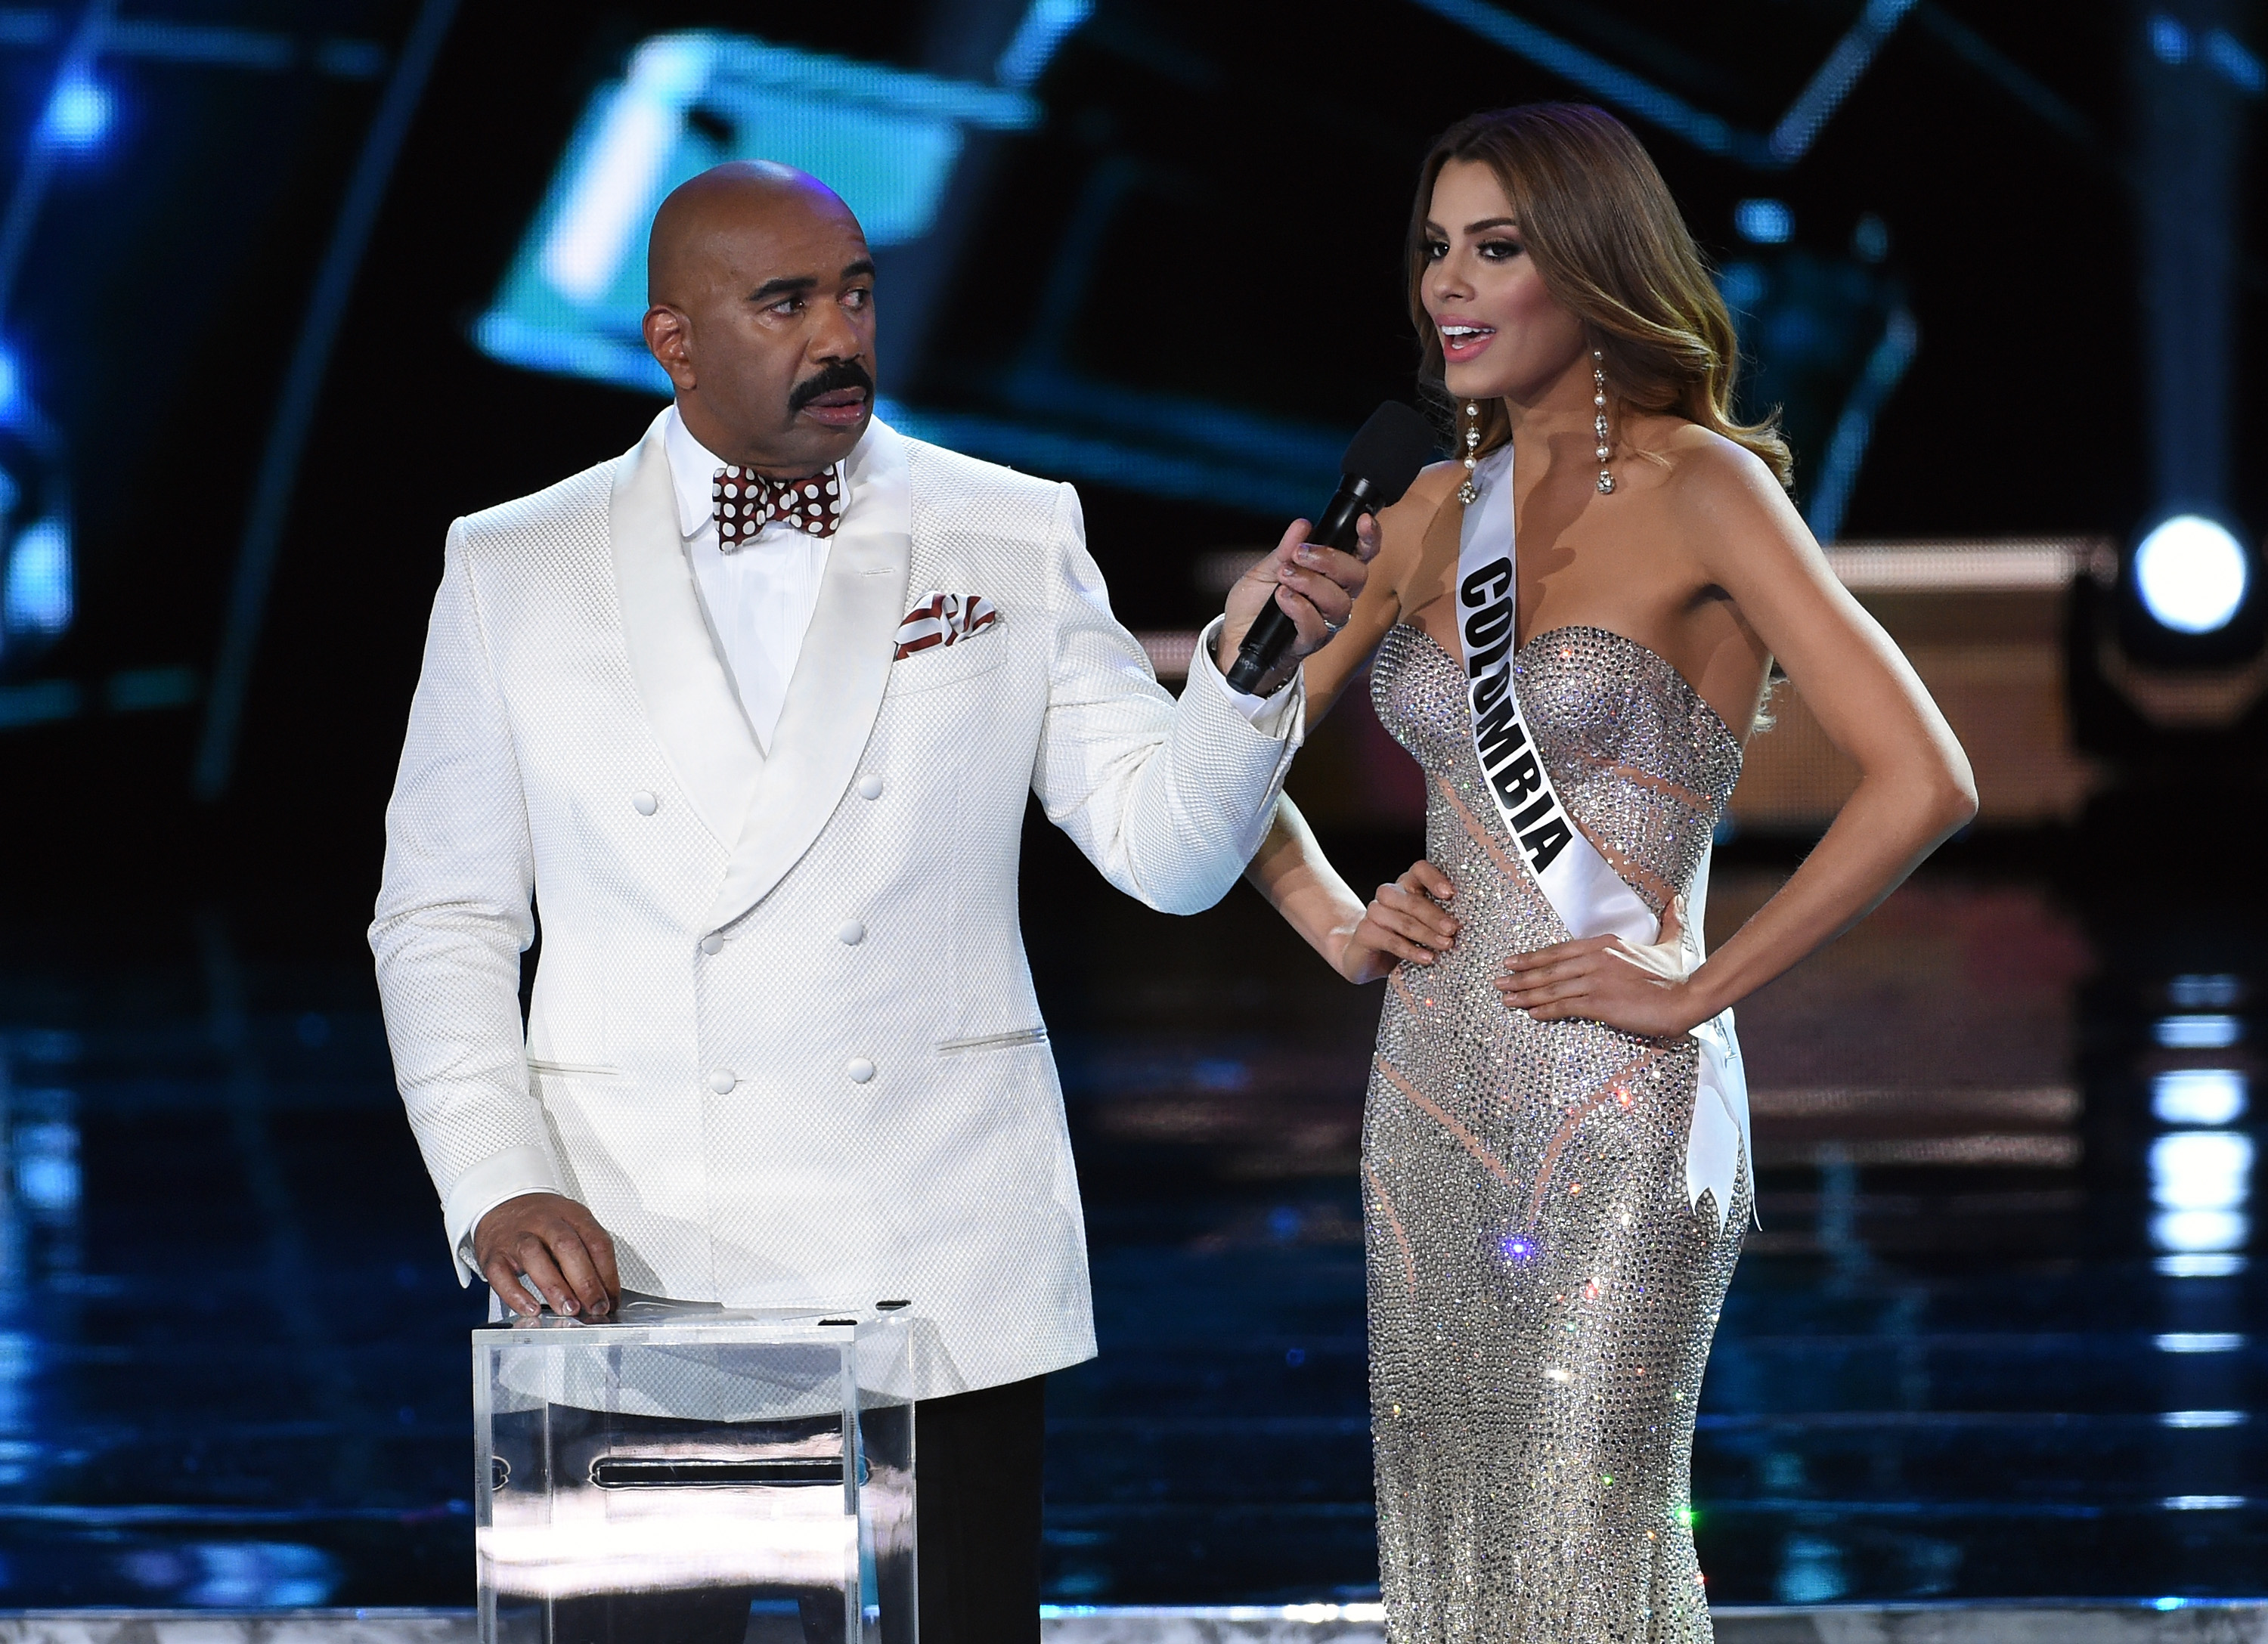 Host Steve Harvey listens as Miss Colombia 2015, Ariadna Gutierrez Arevalo, answers a question during the interview portion of the 2015 Miss Universe Pageant on Dec. 20, 2015.